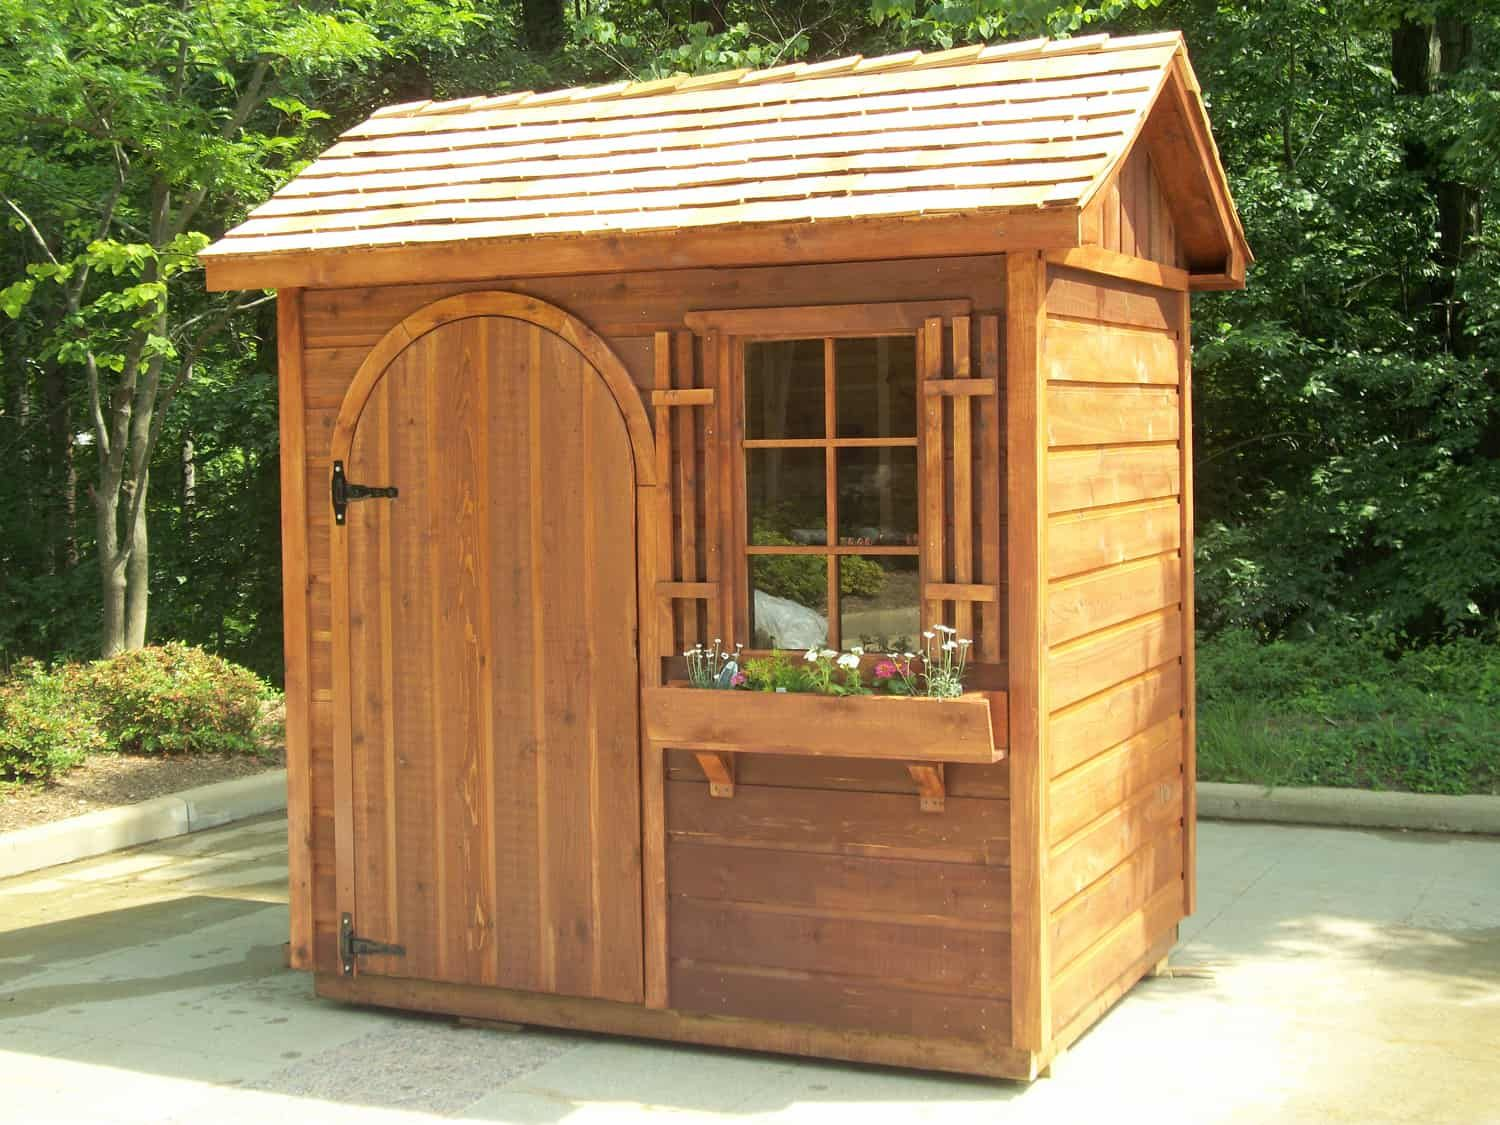 20 Cool Initiatives Of How To Makeover Small Backyard Shed Ideas Simphome Backyard Sheds Backyard Shed Outdoor Sheds Backyard garden shed ideas